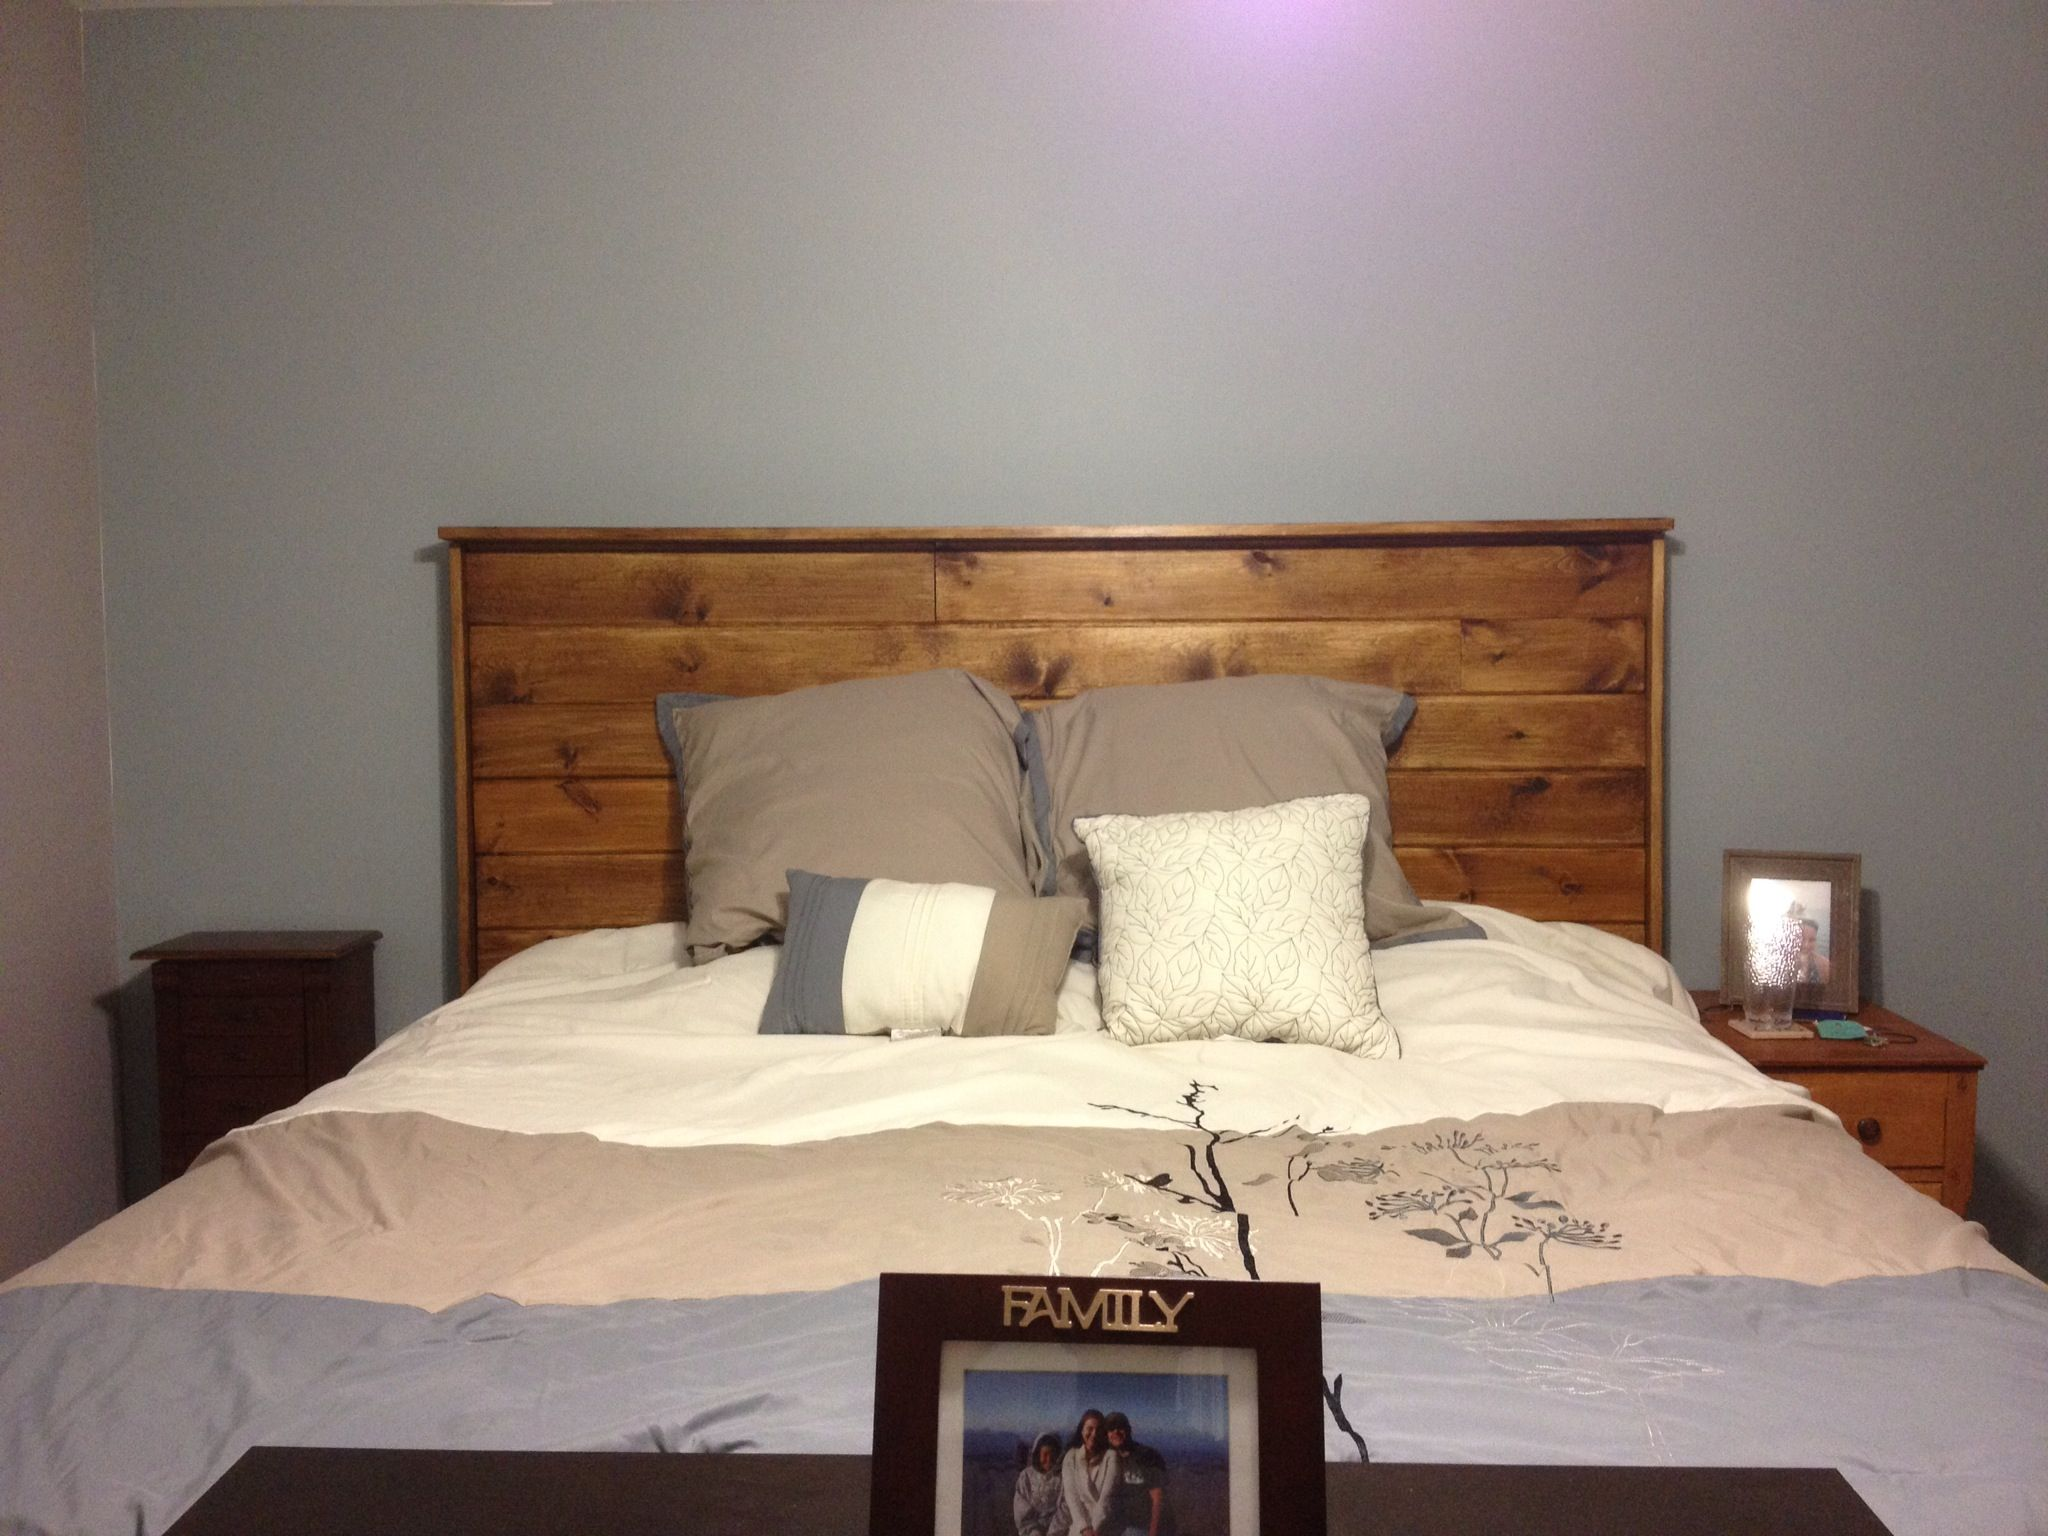 Homemade headboard for king size bed home decor for King size bed designs